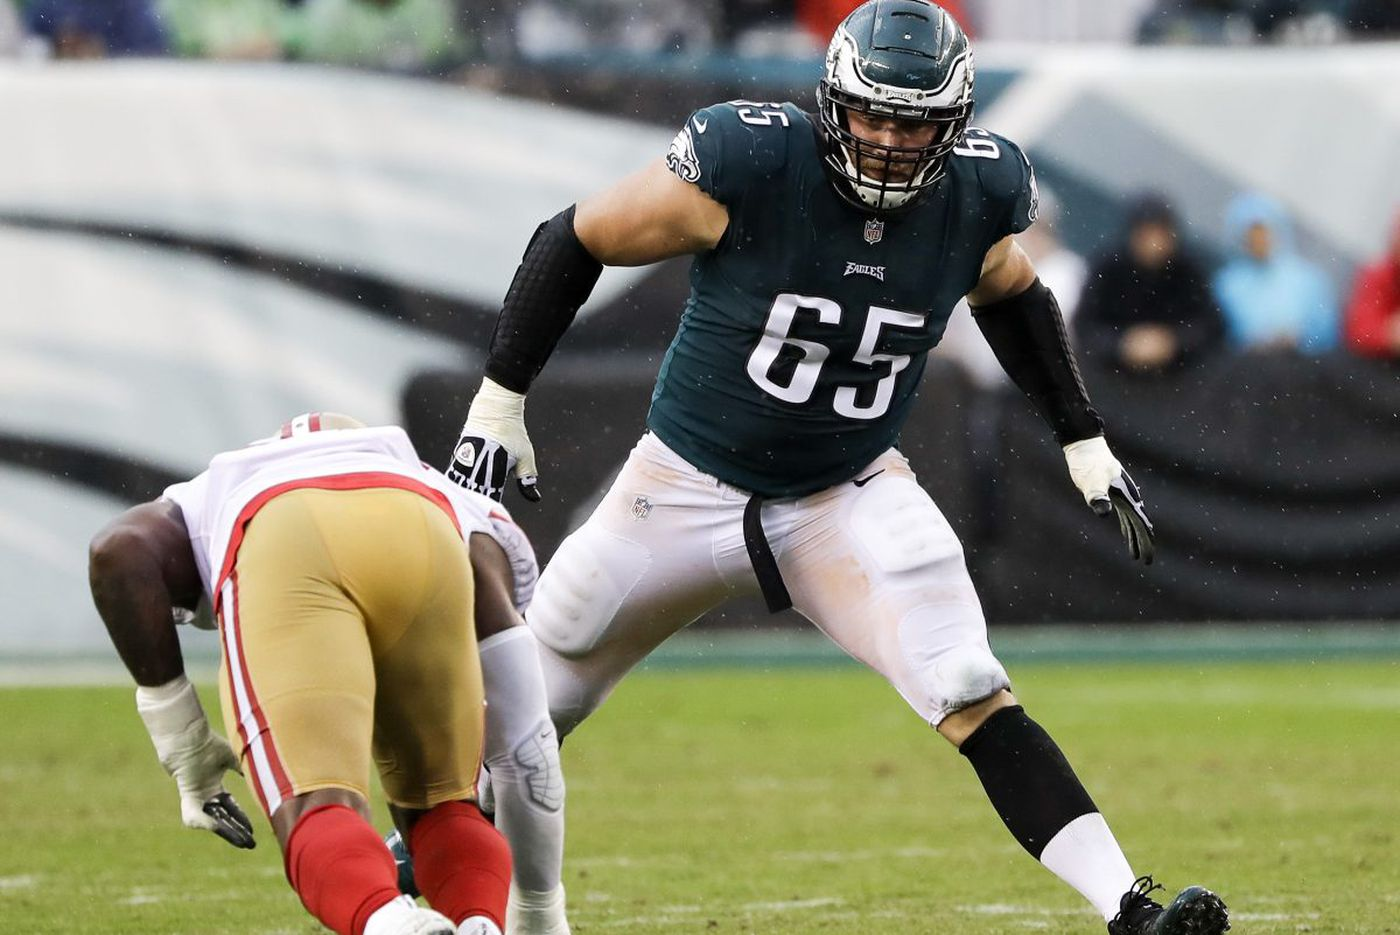 Tired of being a screw-up, Lane Johnson out to prove his greatness